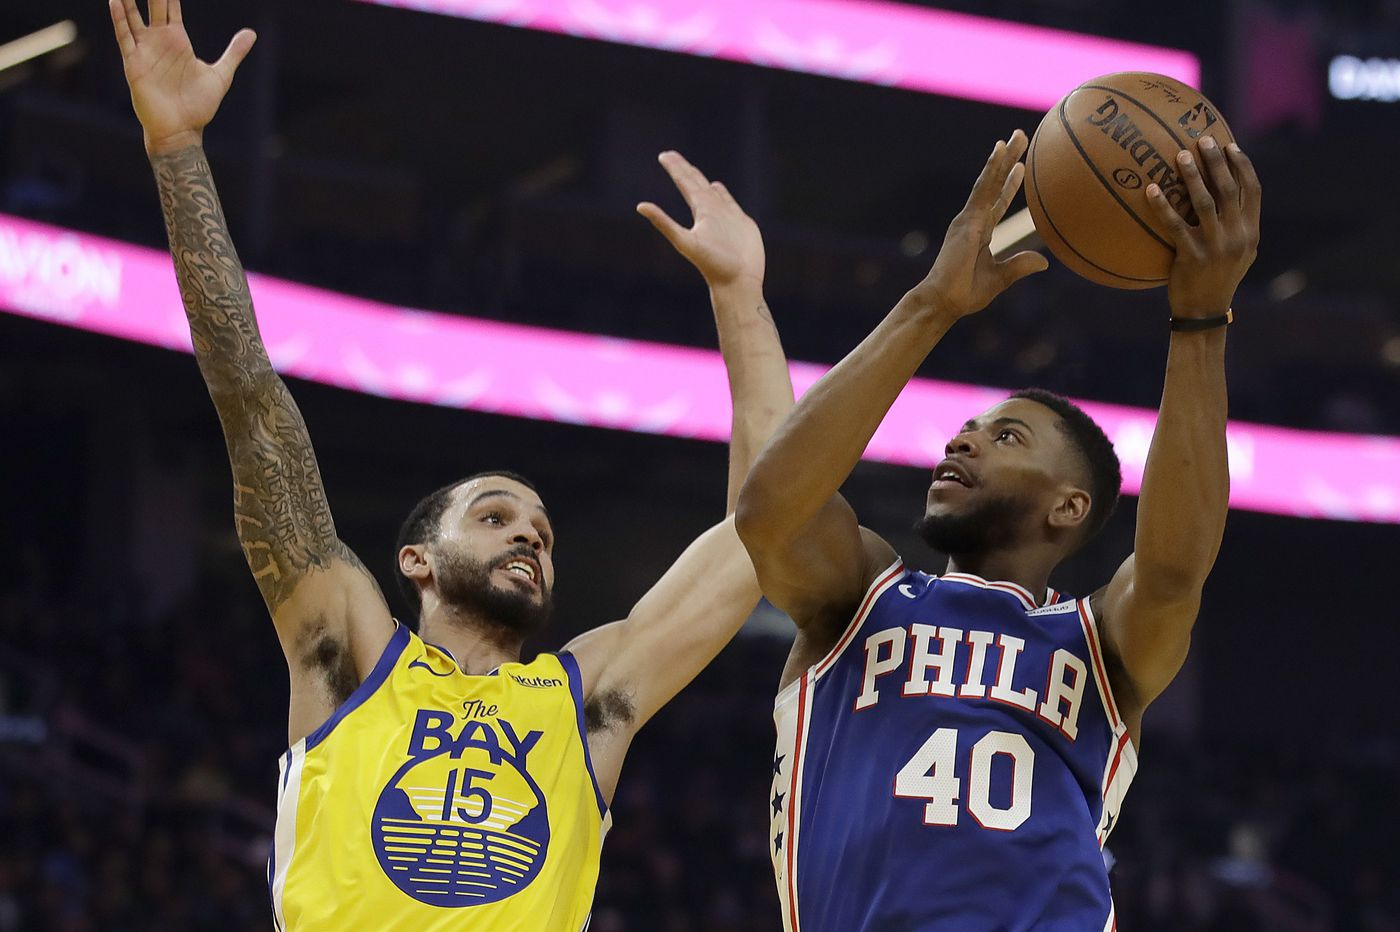 Glenn Robinson III experiencing back discomfort, Sixers not concerned